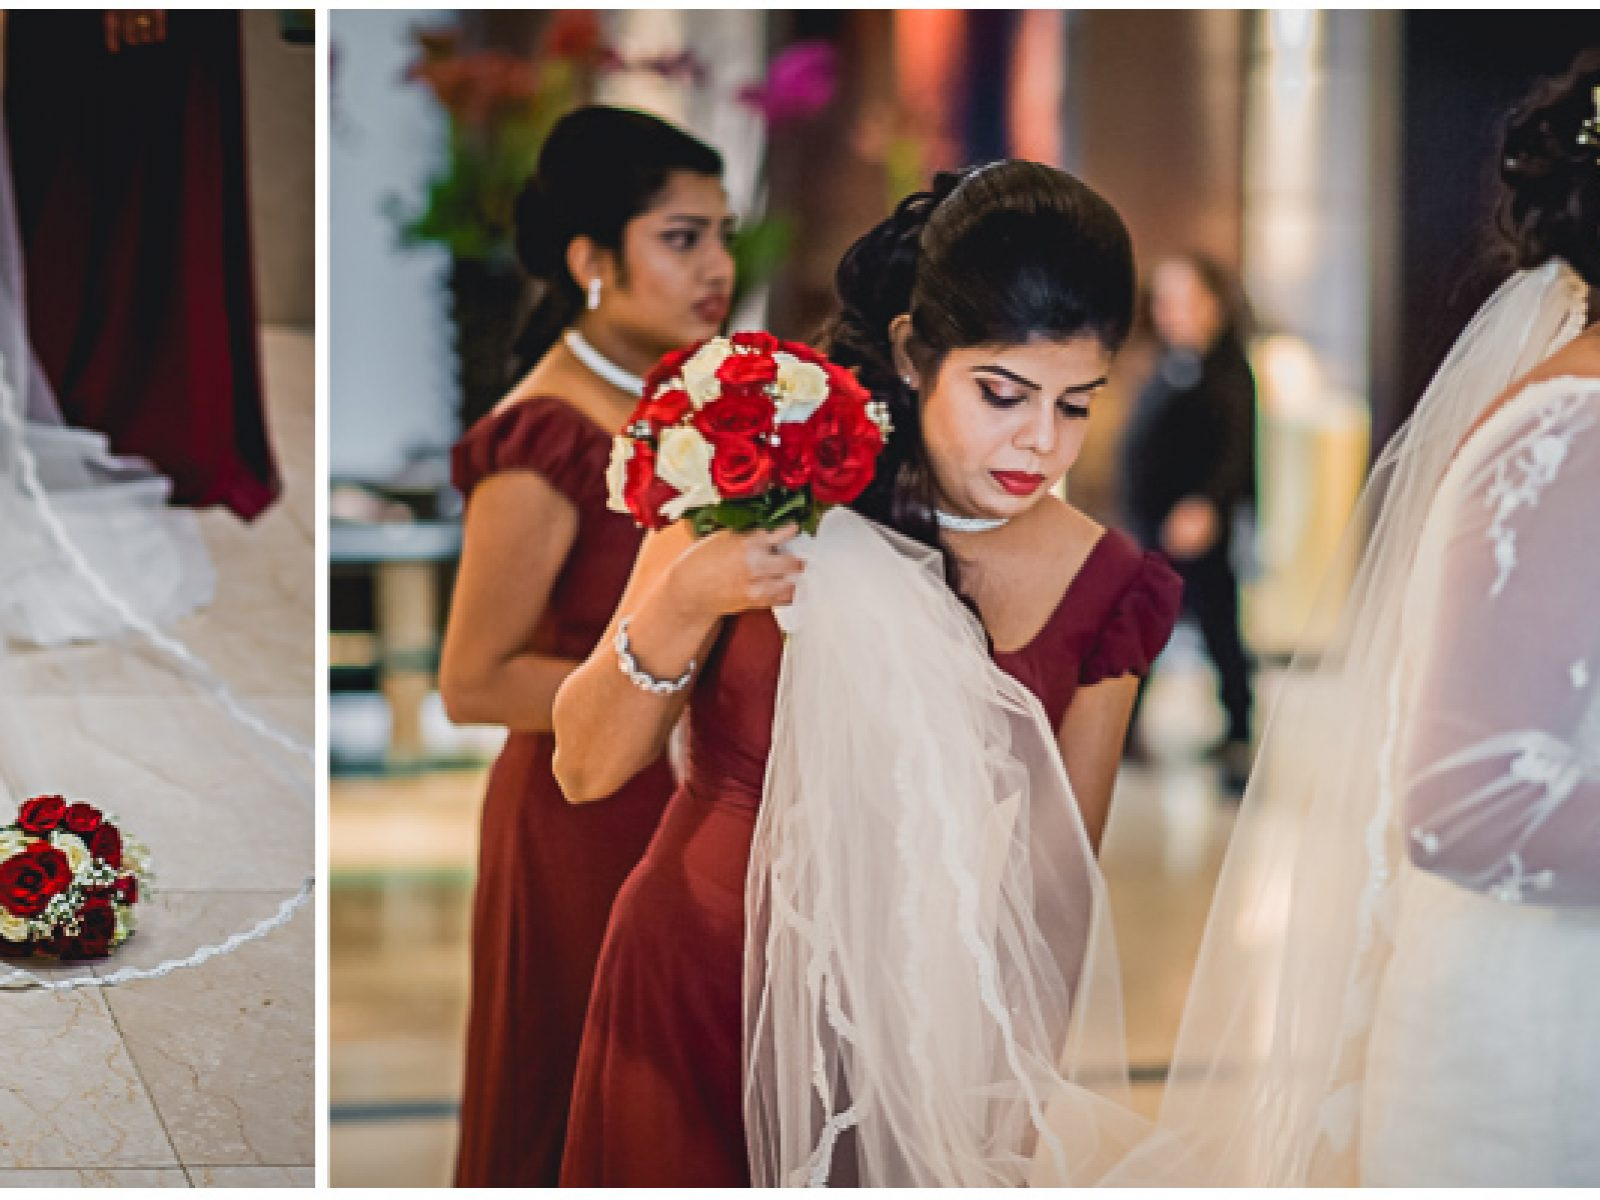 231 1600x1200 - Darshani and Anthony - wedding photographer in London